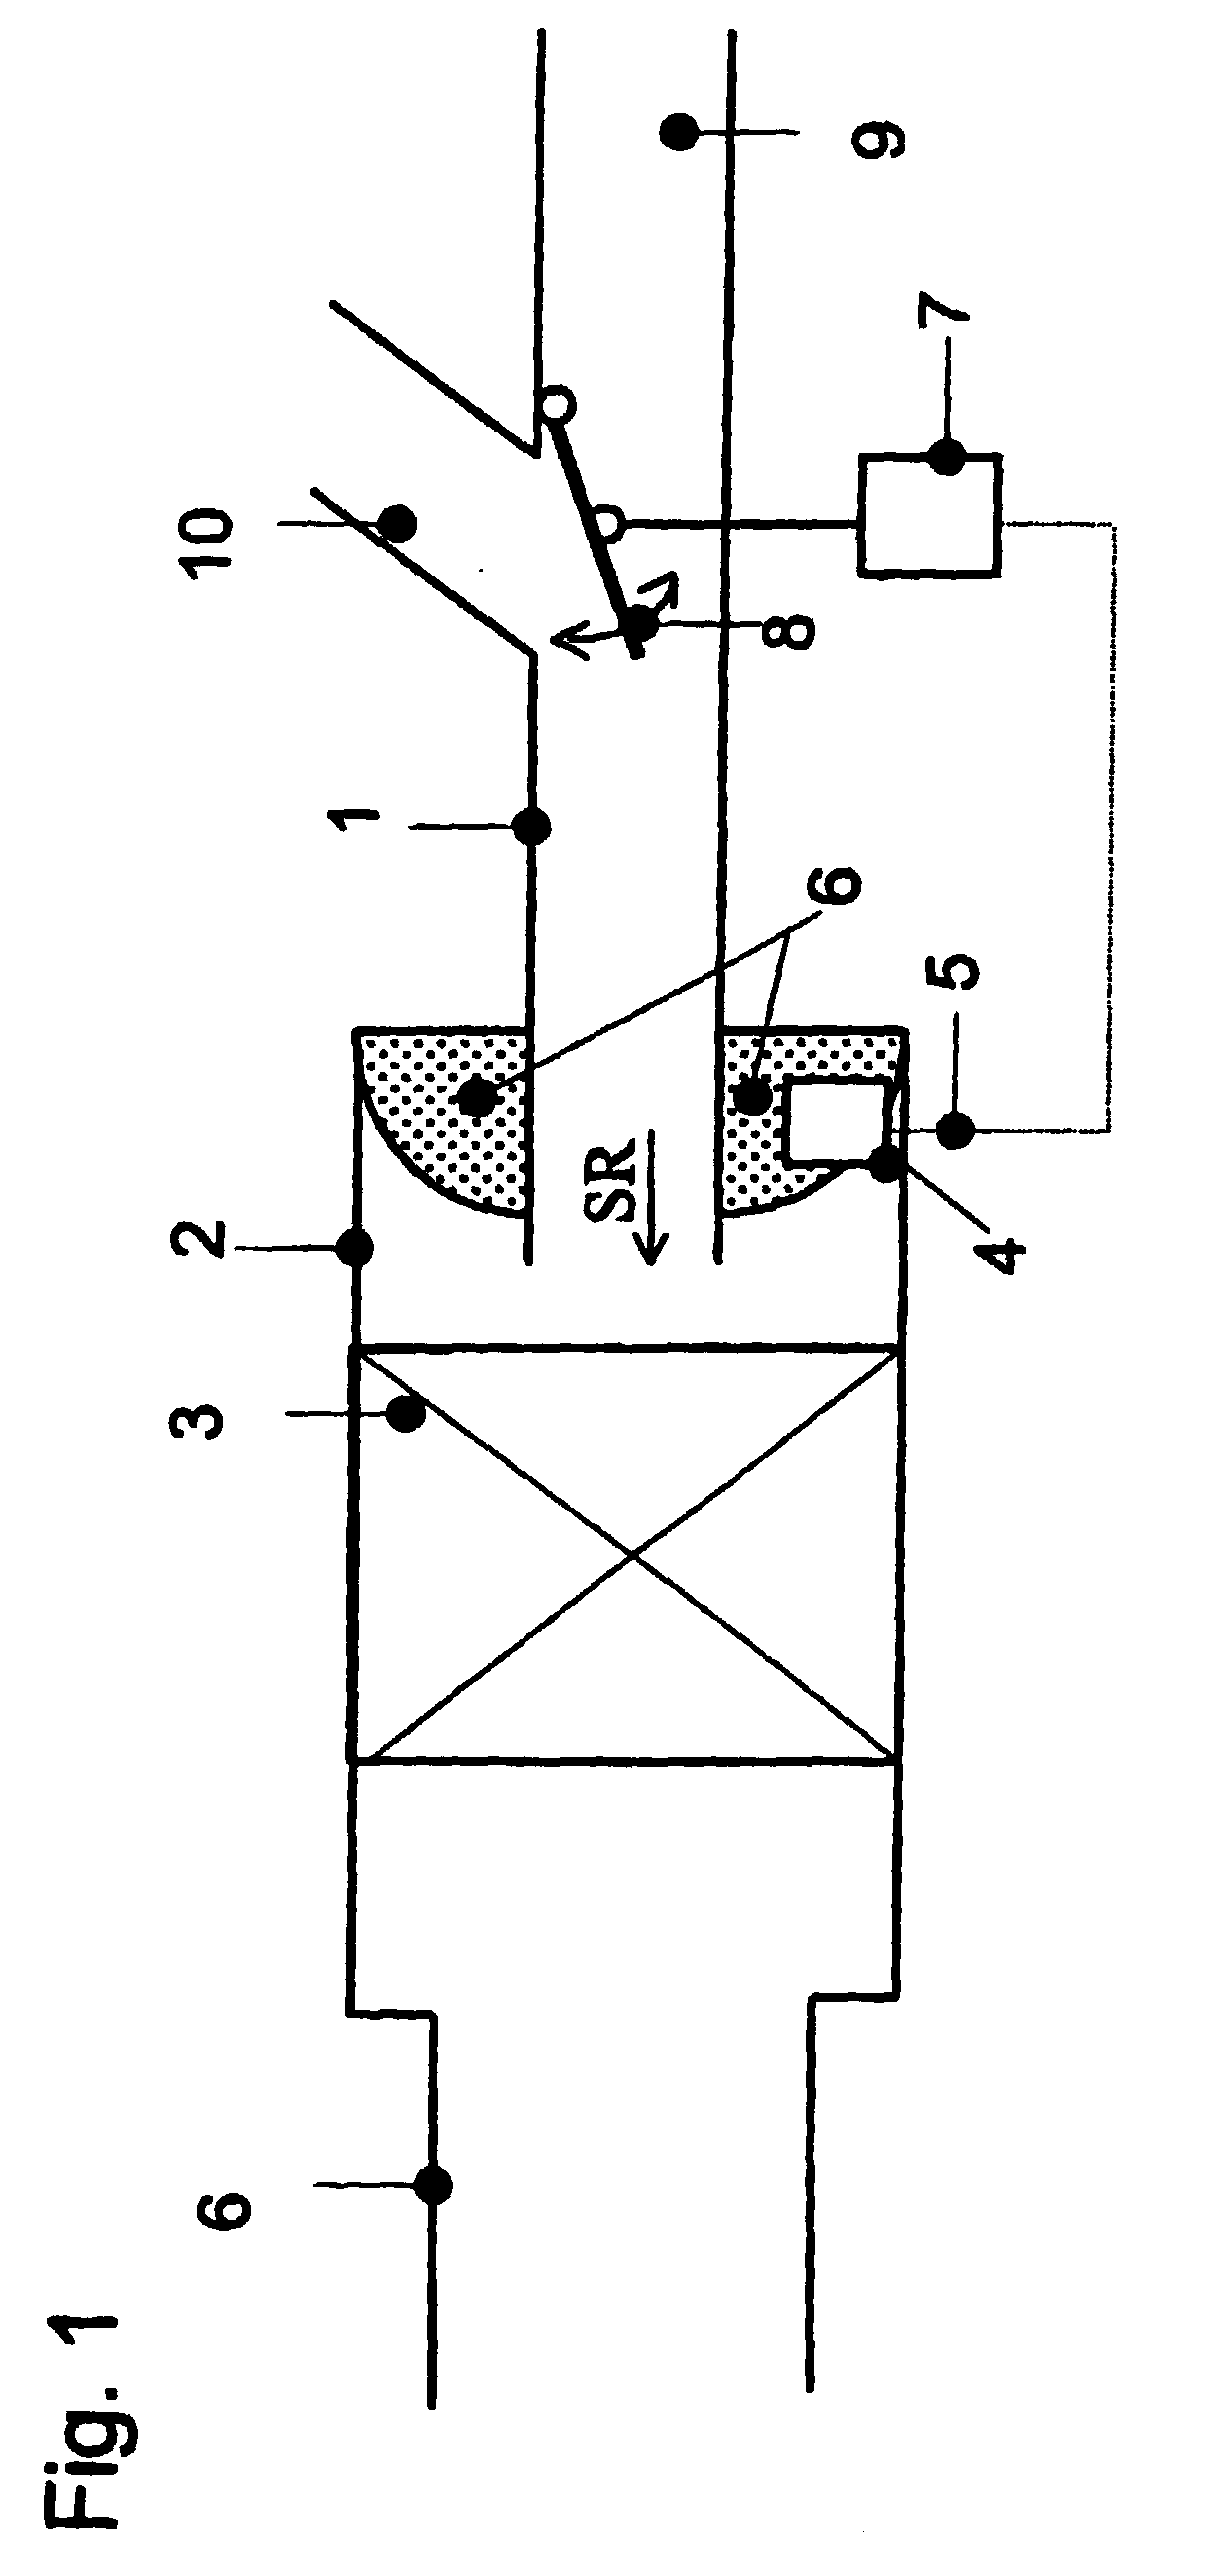 device for controlling the intake air temperature upstream of